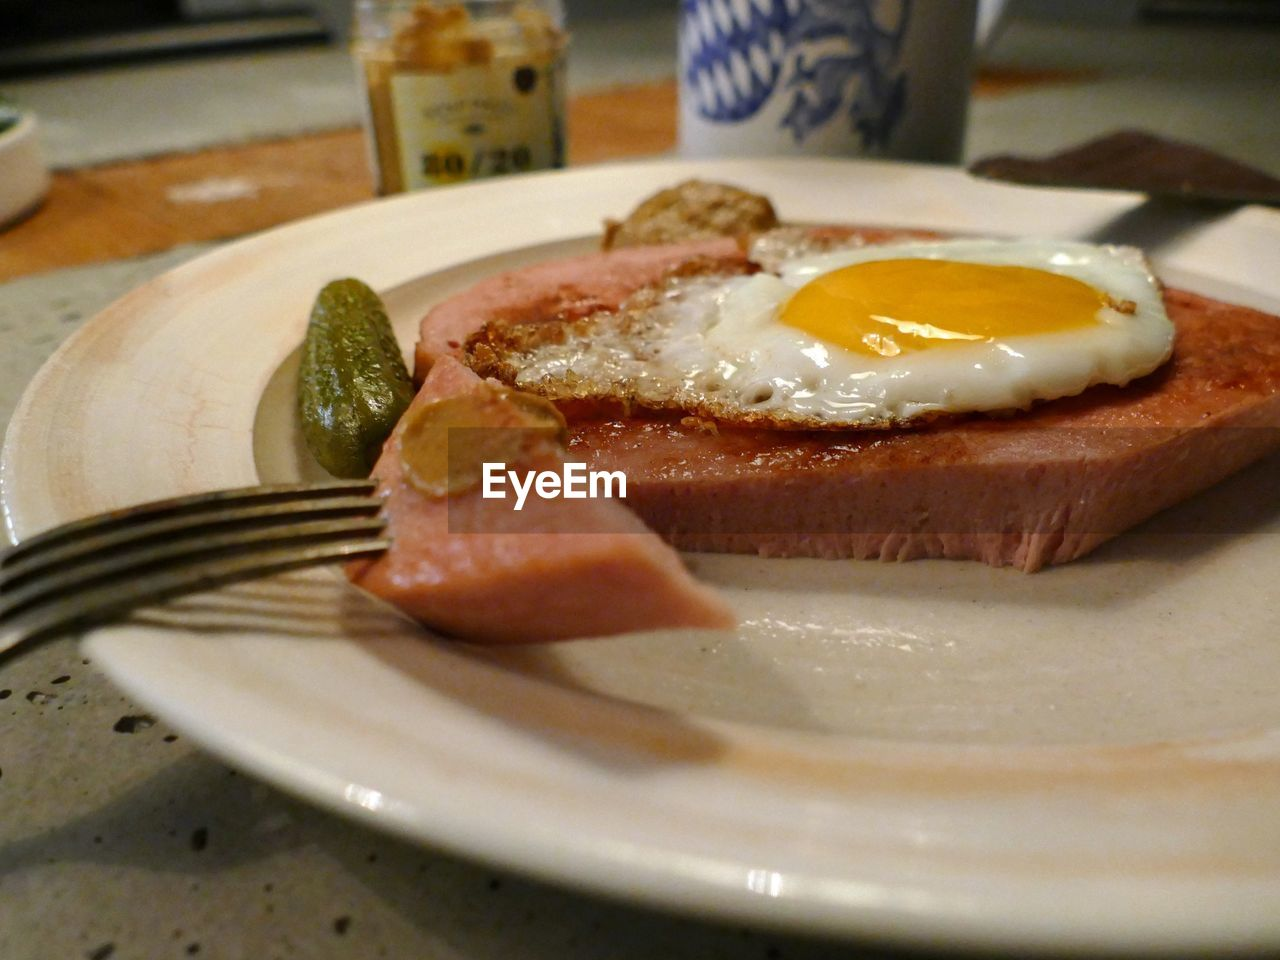 food and drink, food, egg, breakfast, plate, fried egg, indoors, ready-to-eat, no people, meat, healthy eating, egg yolk, meal, freshness, close-up, sunny side up, bacon, day